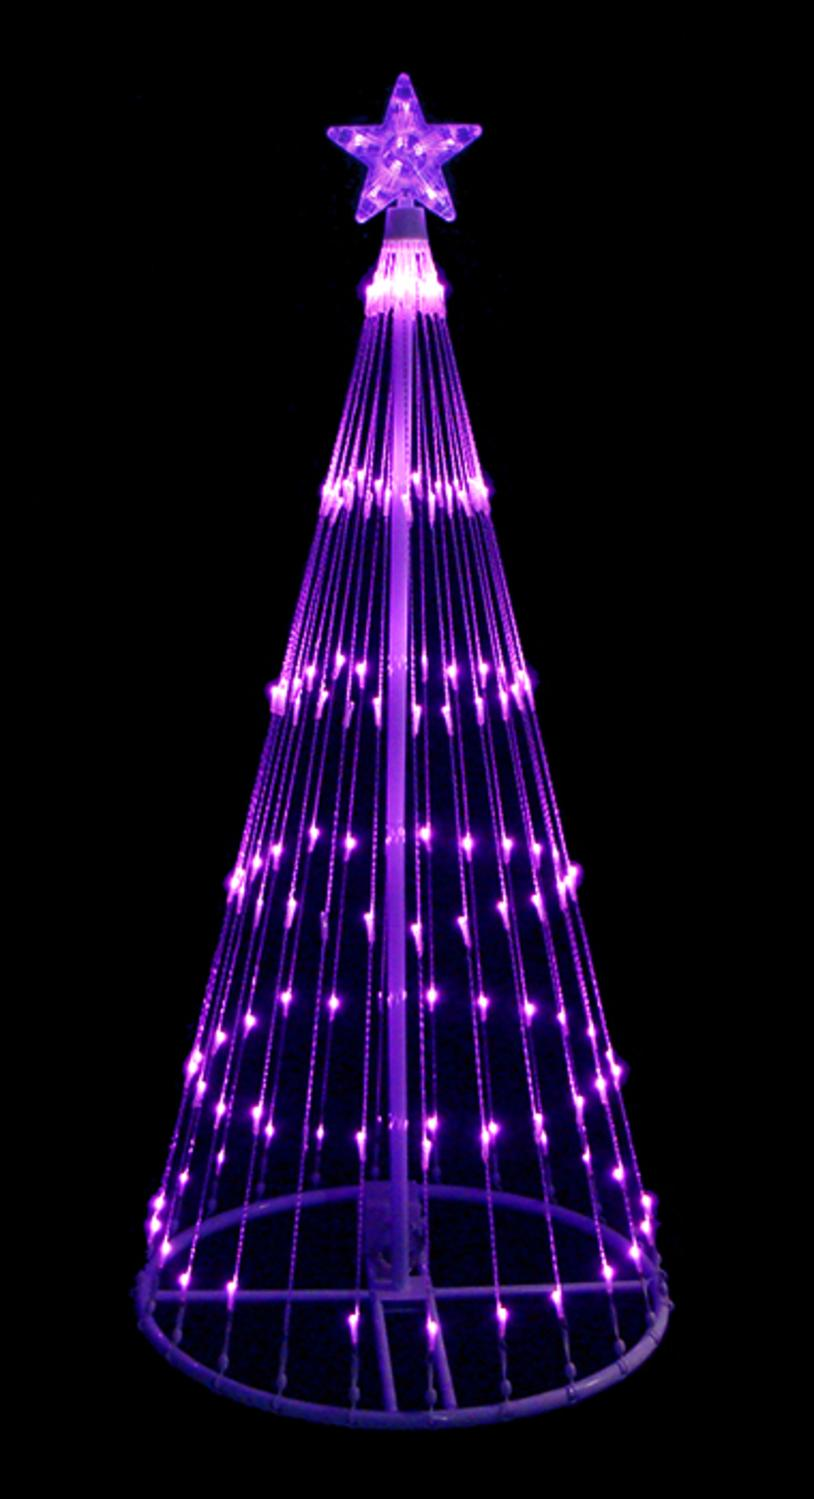 4 39 purple led light show cone christmas tree lighted yard art decoration 762152572506 ebay. Black Bedroom Furniture Sets. Home Design Ideas